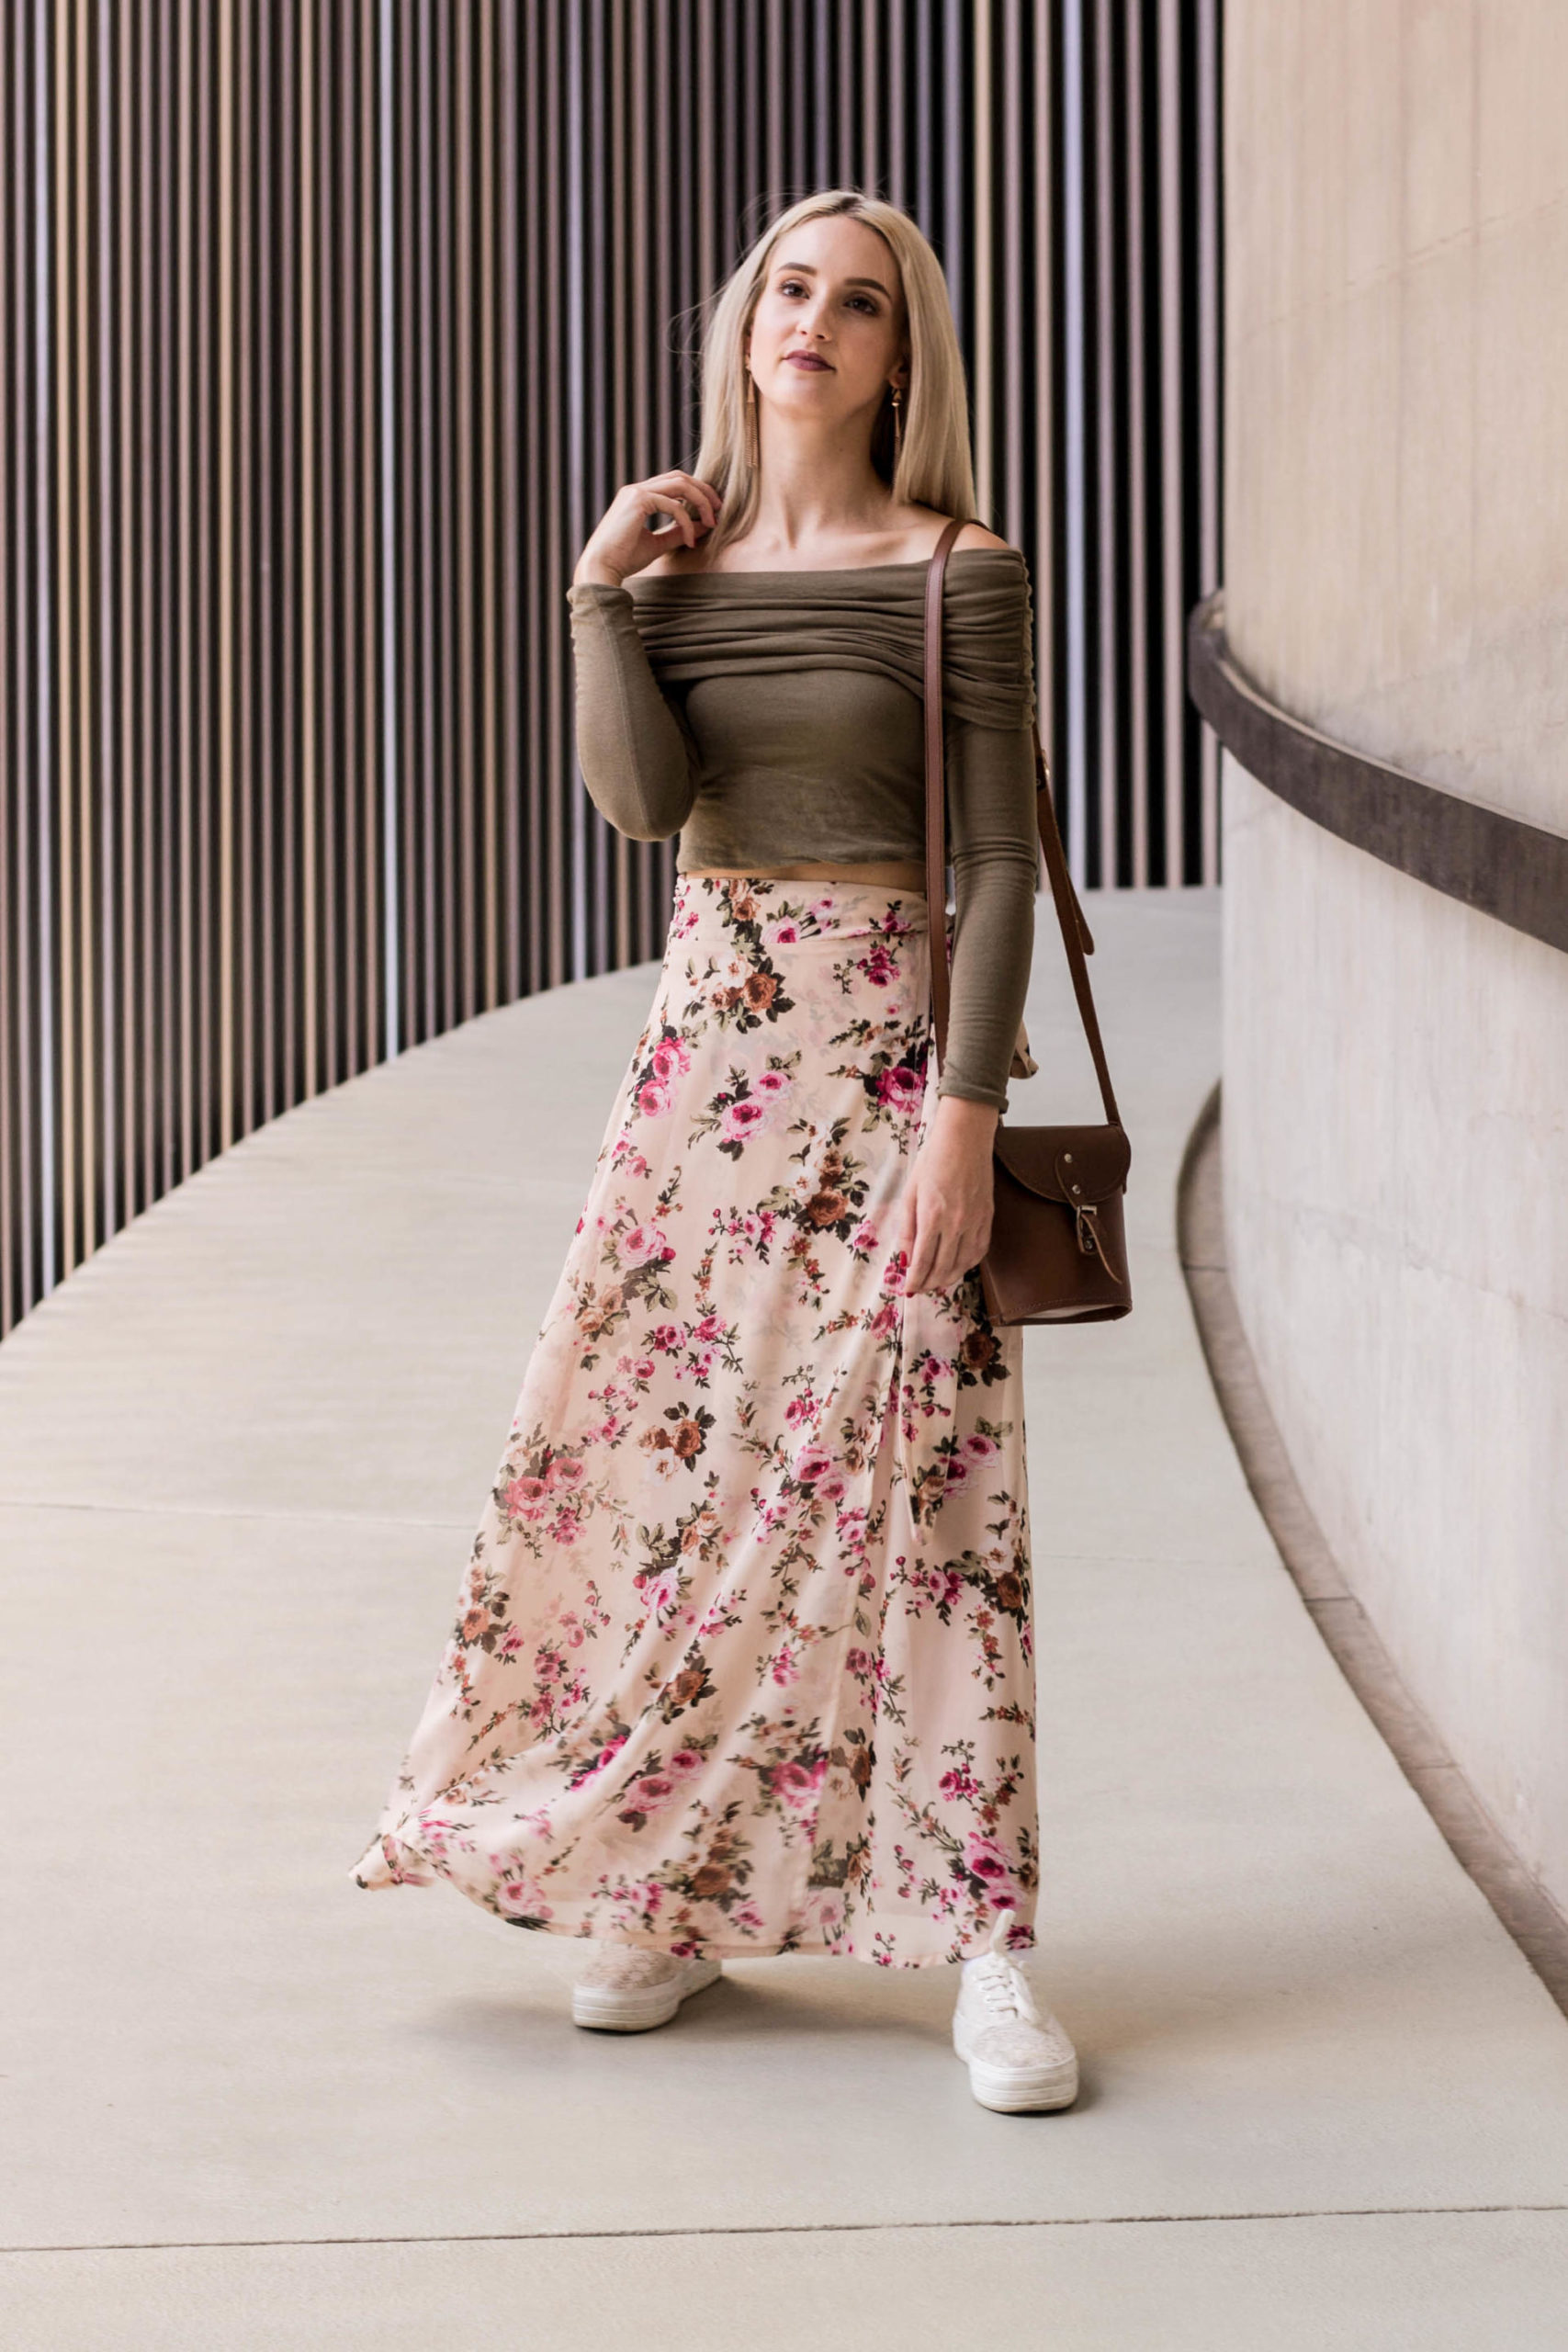 Lauren in floral skirt